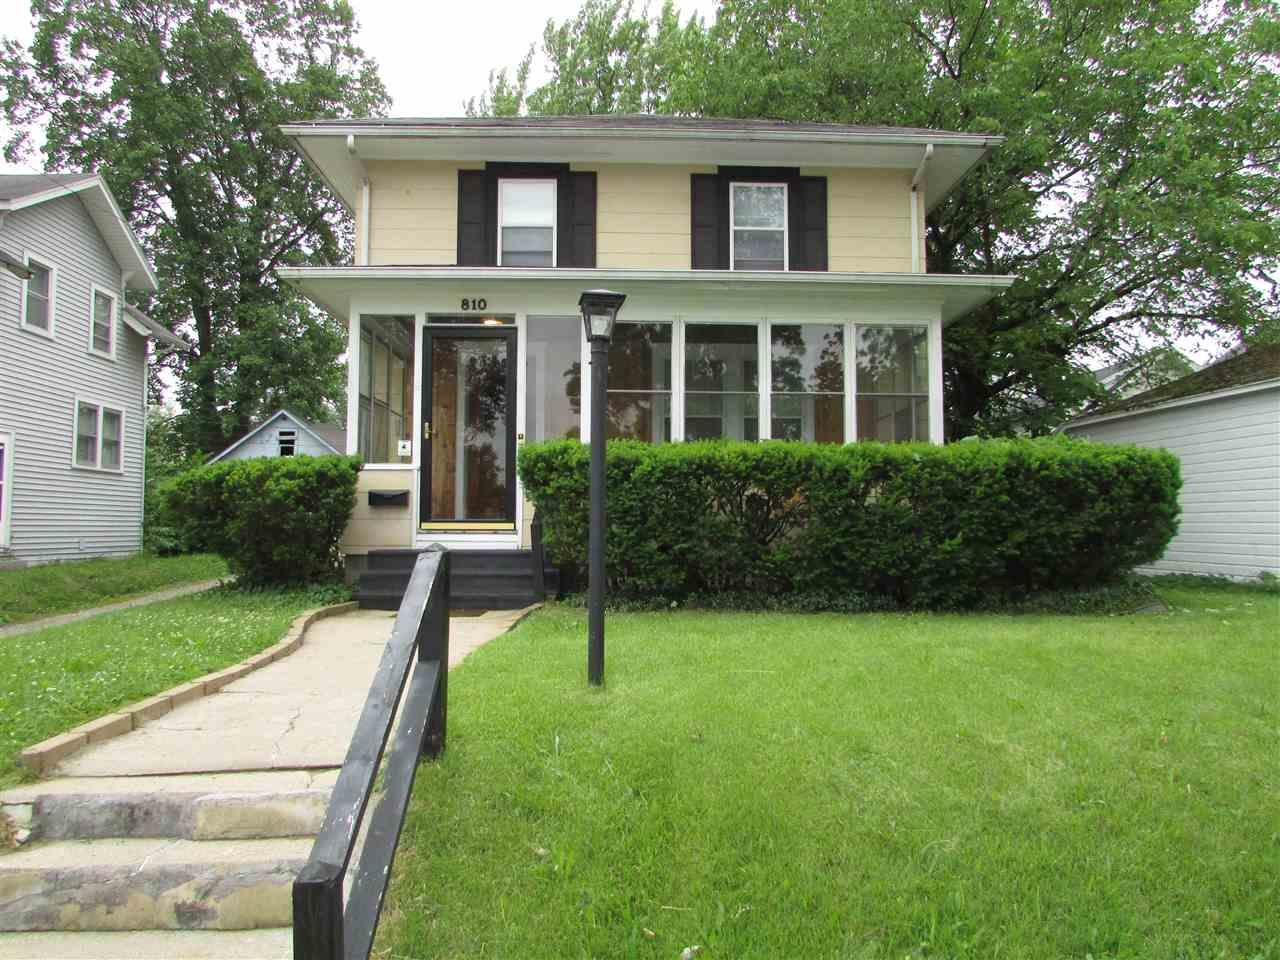 810 E Donald South Bend, IN 46613